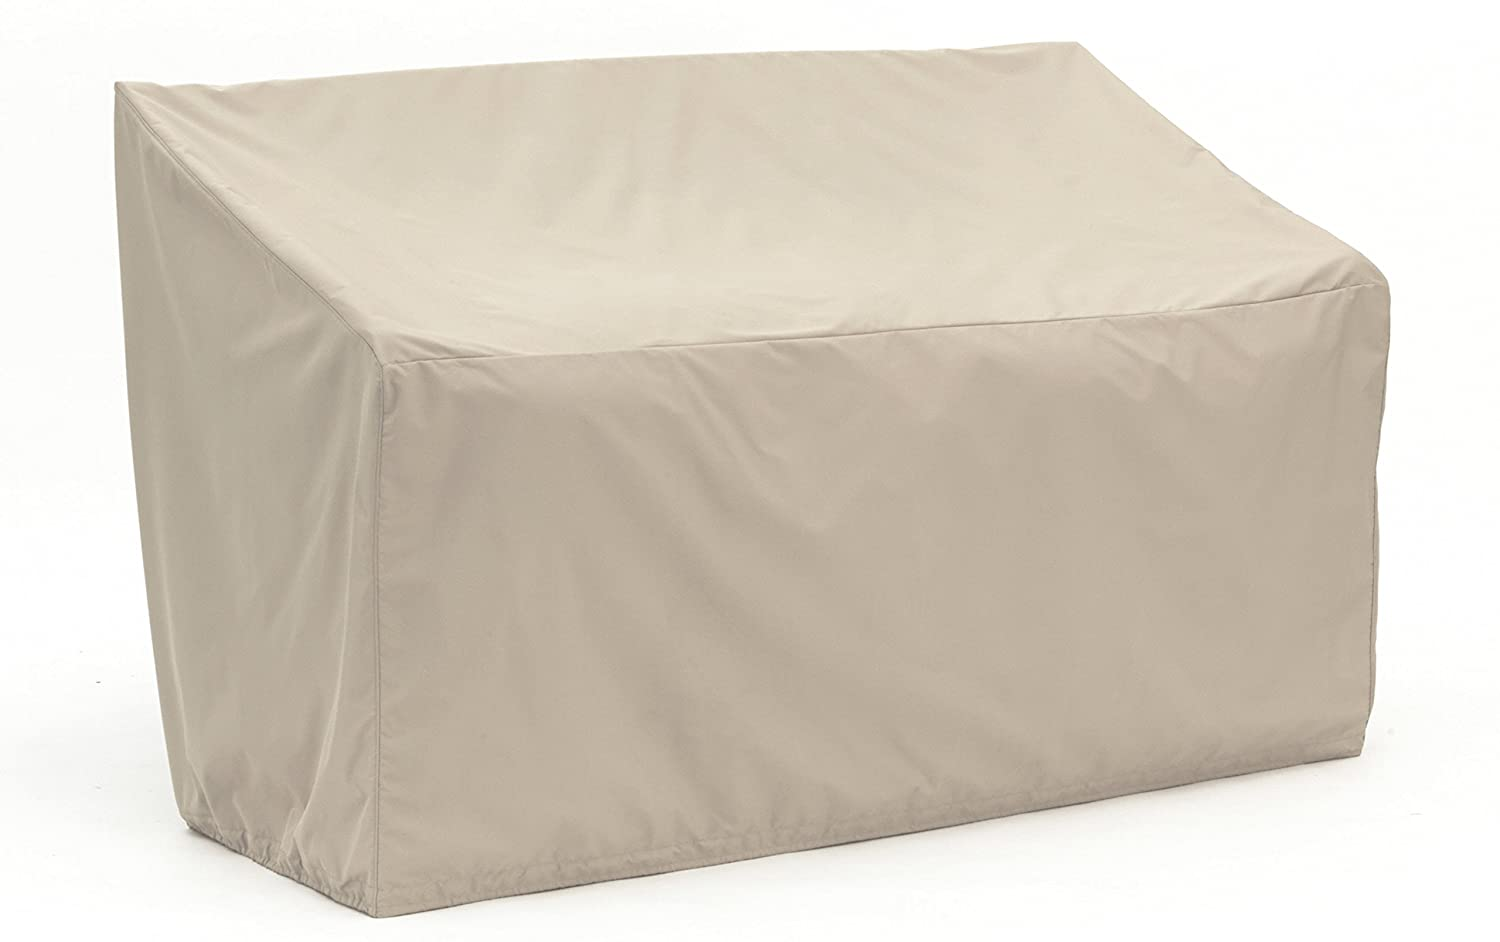 Covermates Outdoor Patio Loveseat Cover – Heavy-Duty Polyester, Elastic Hem, Seating and Chair Covers - Khaki